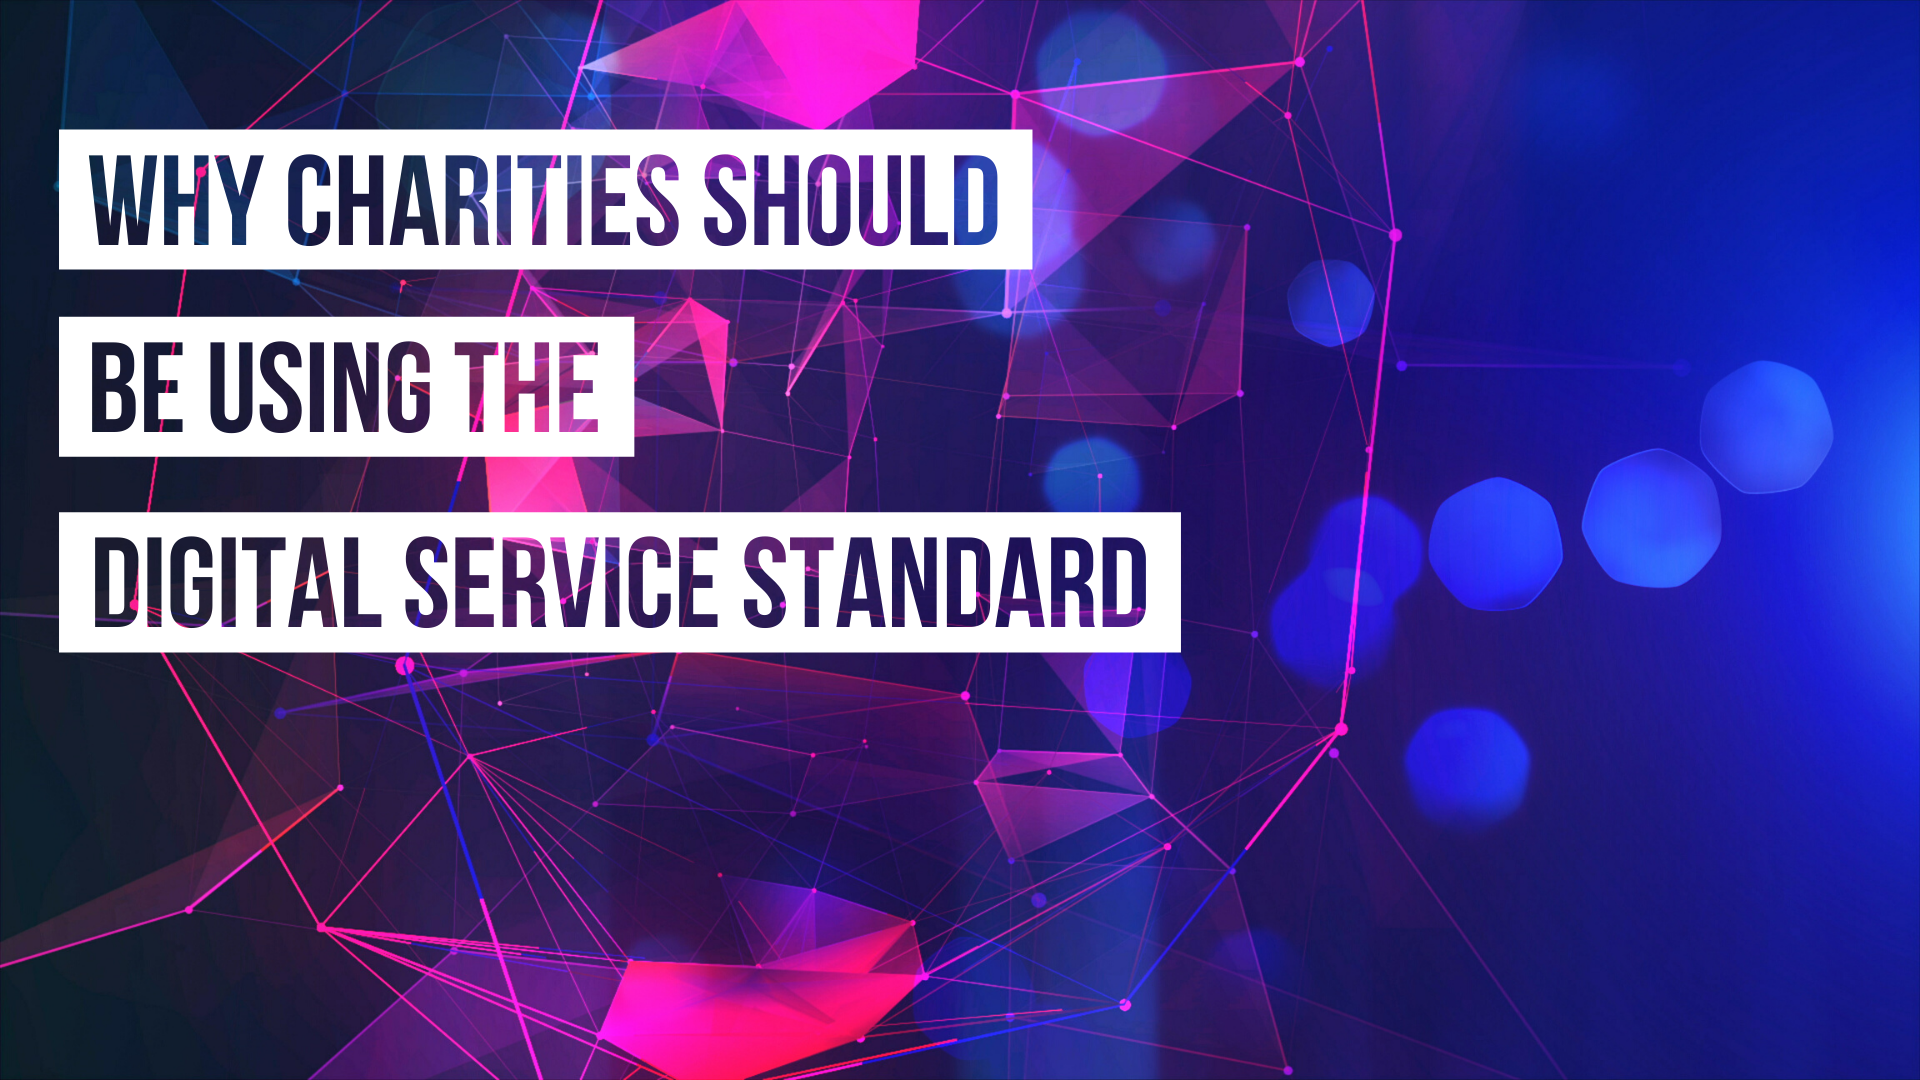 Why Charities should be using the Digital Service Standard